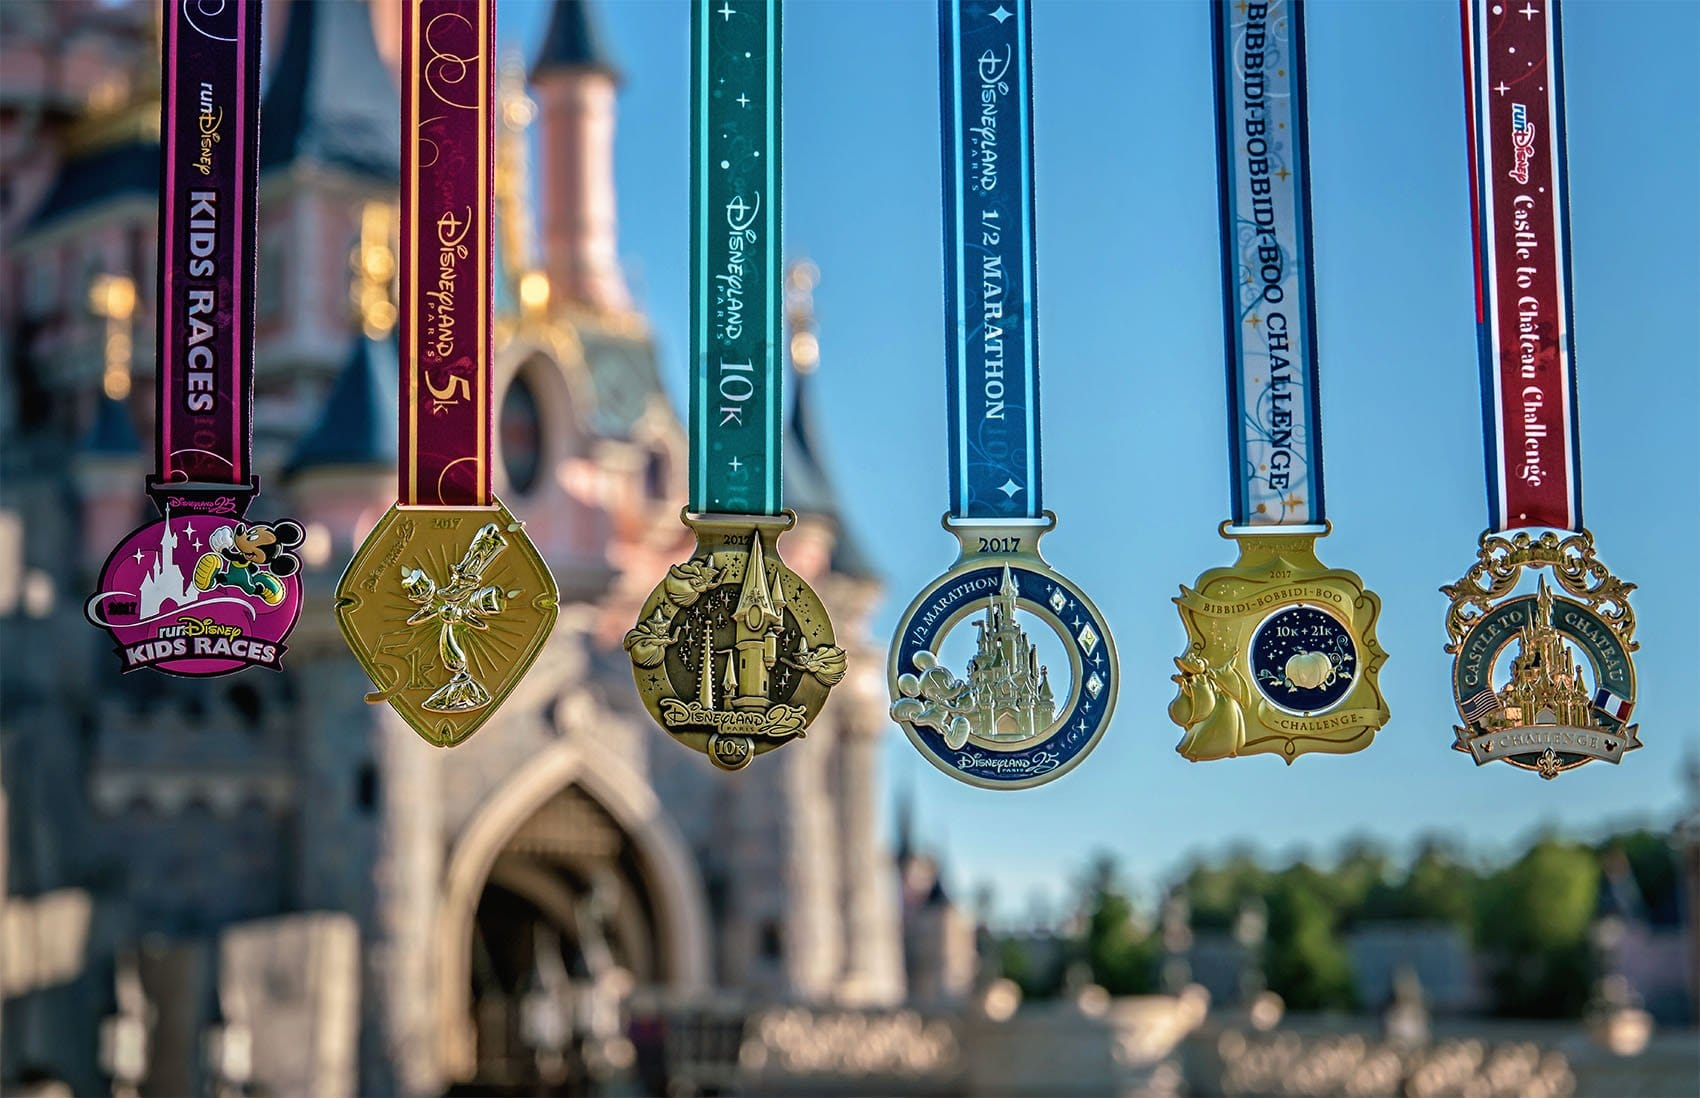 runDisney Disneyland Paris 2017